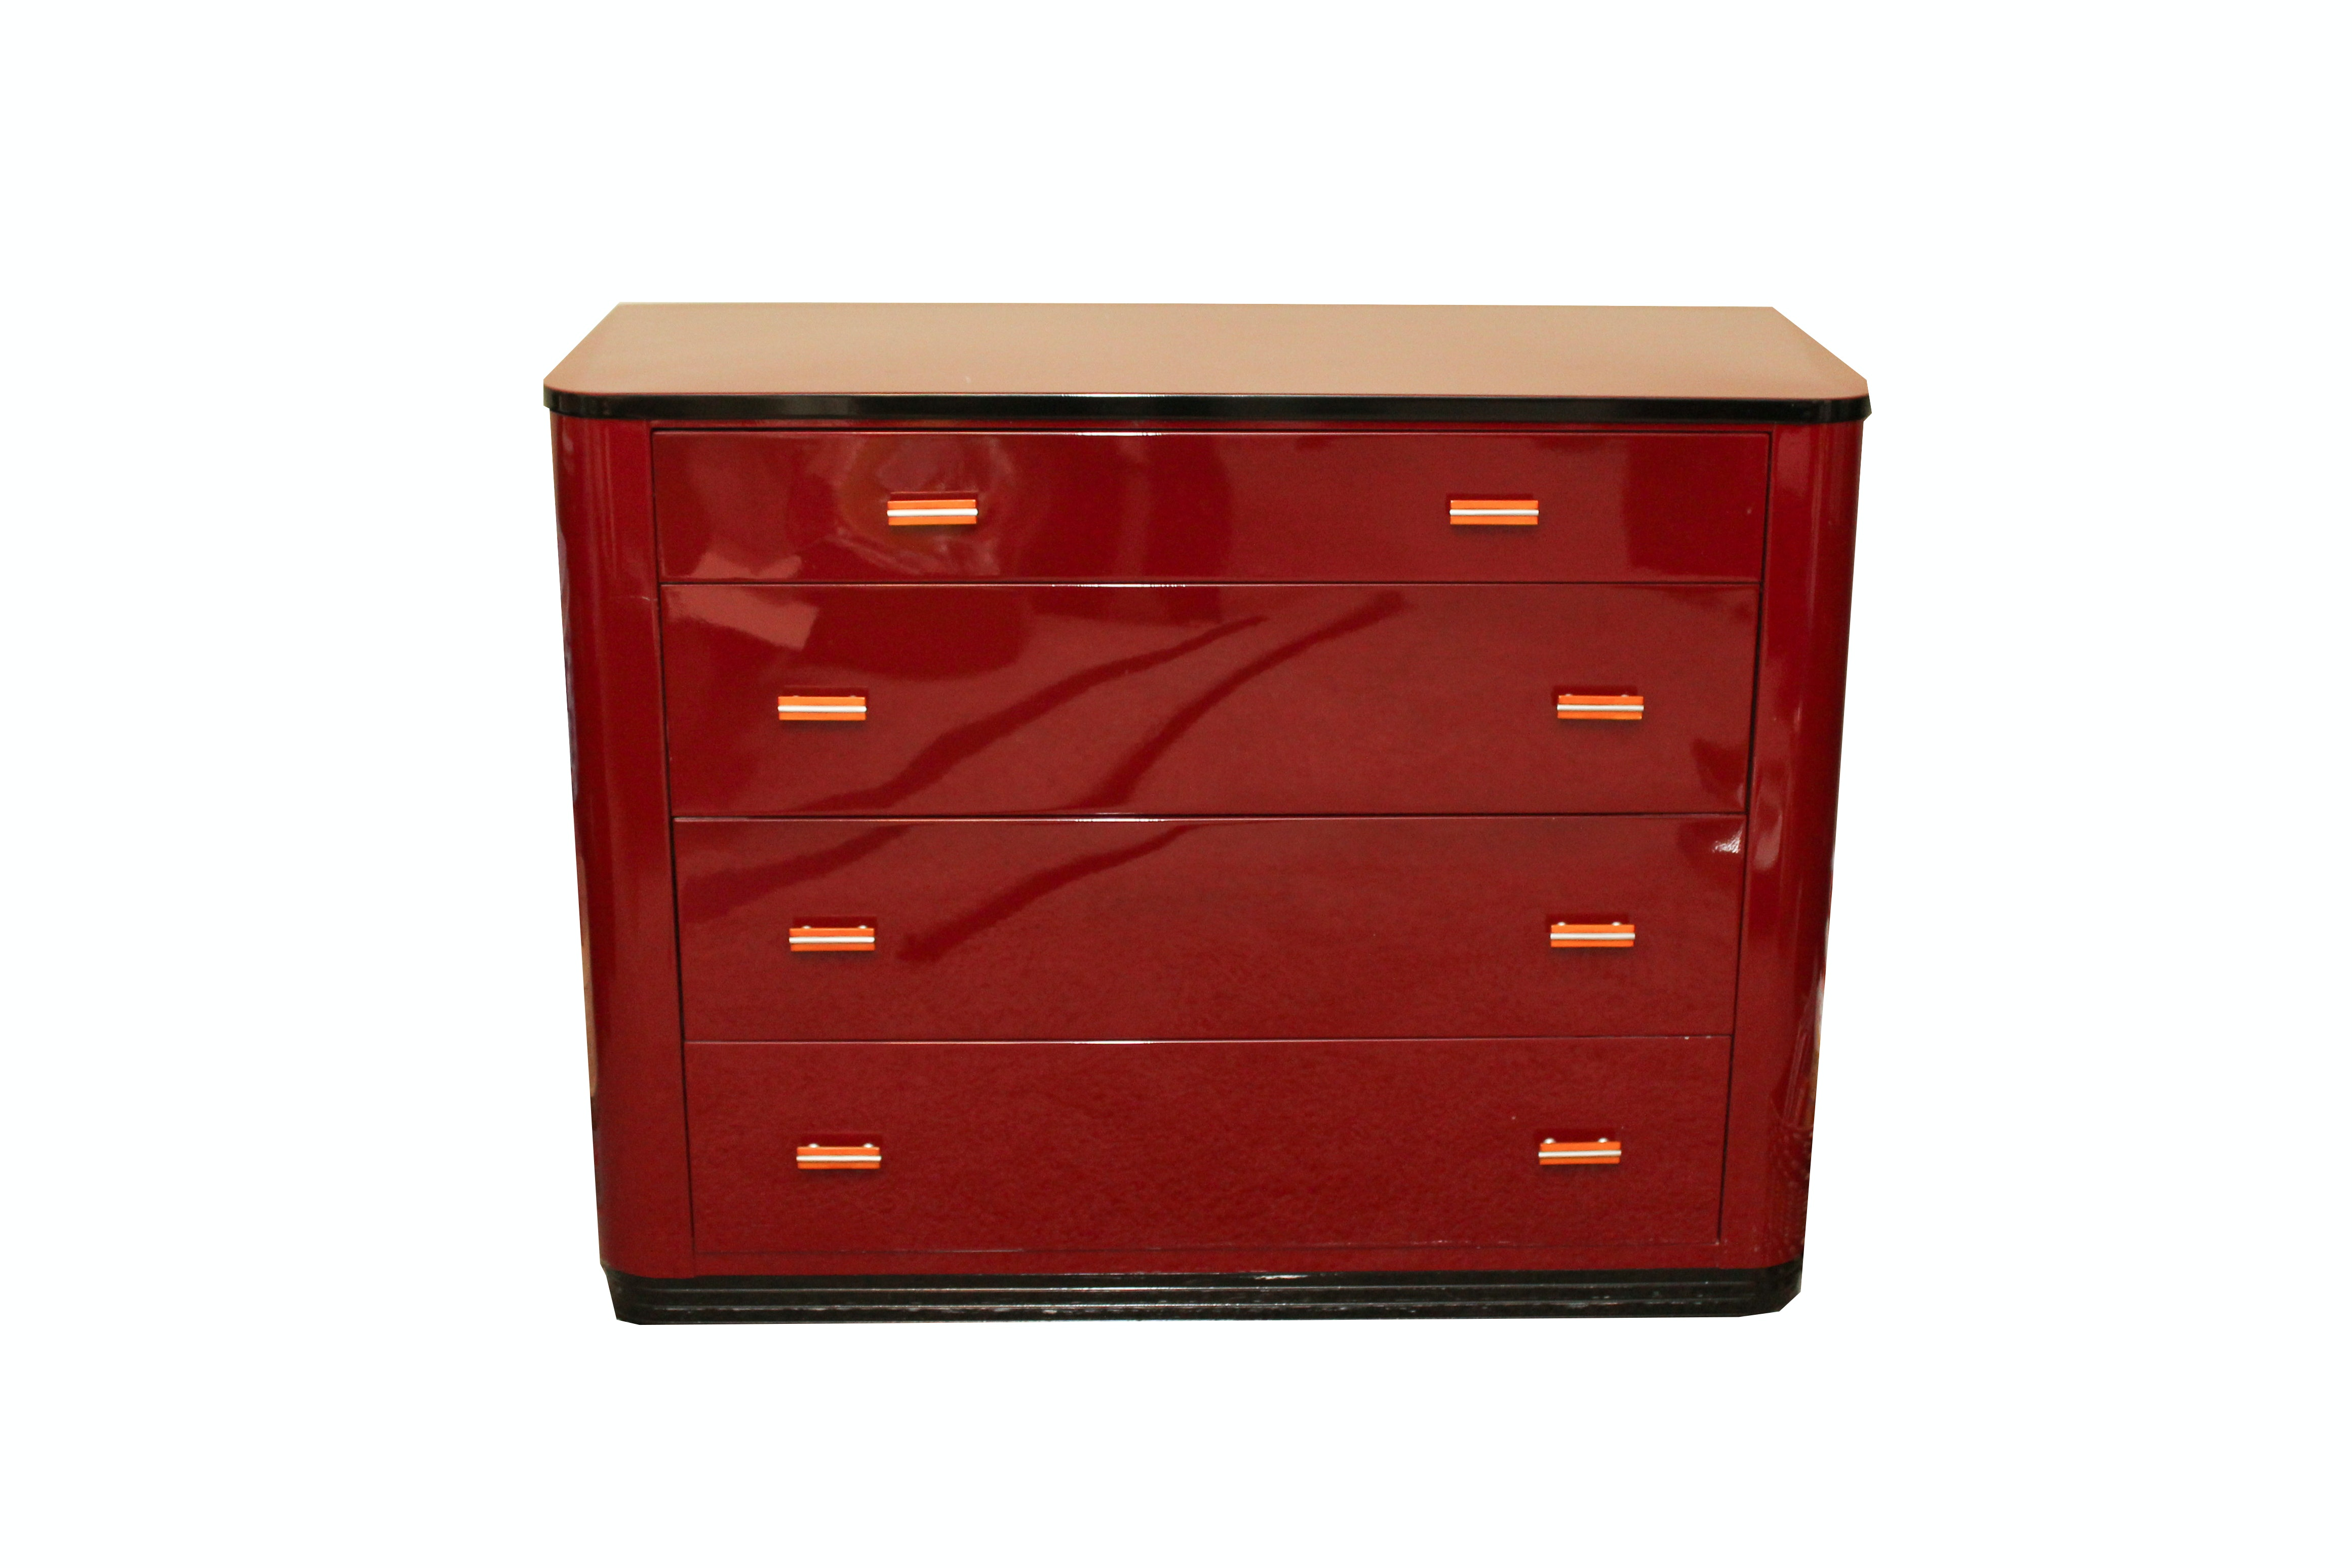 Norman Bel Geddes For Simmons Furniture Chest Of Drawers ...